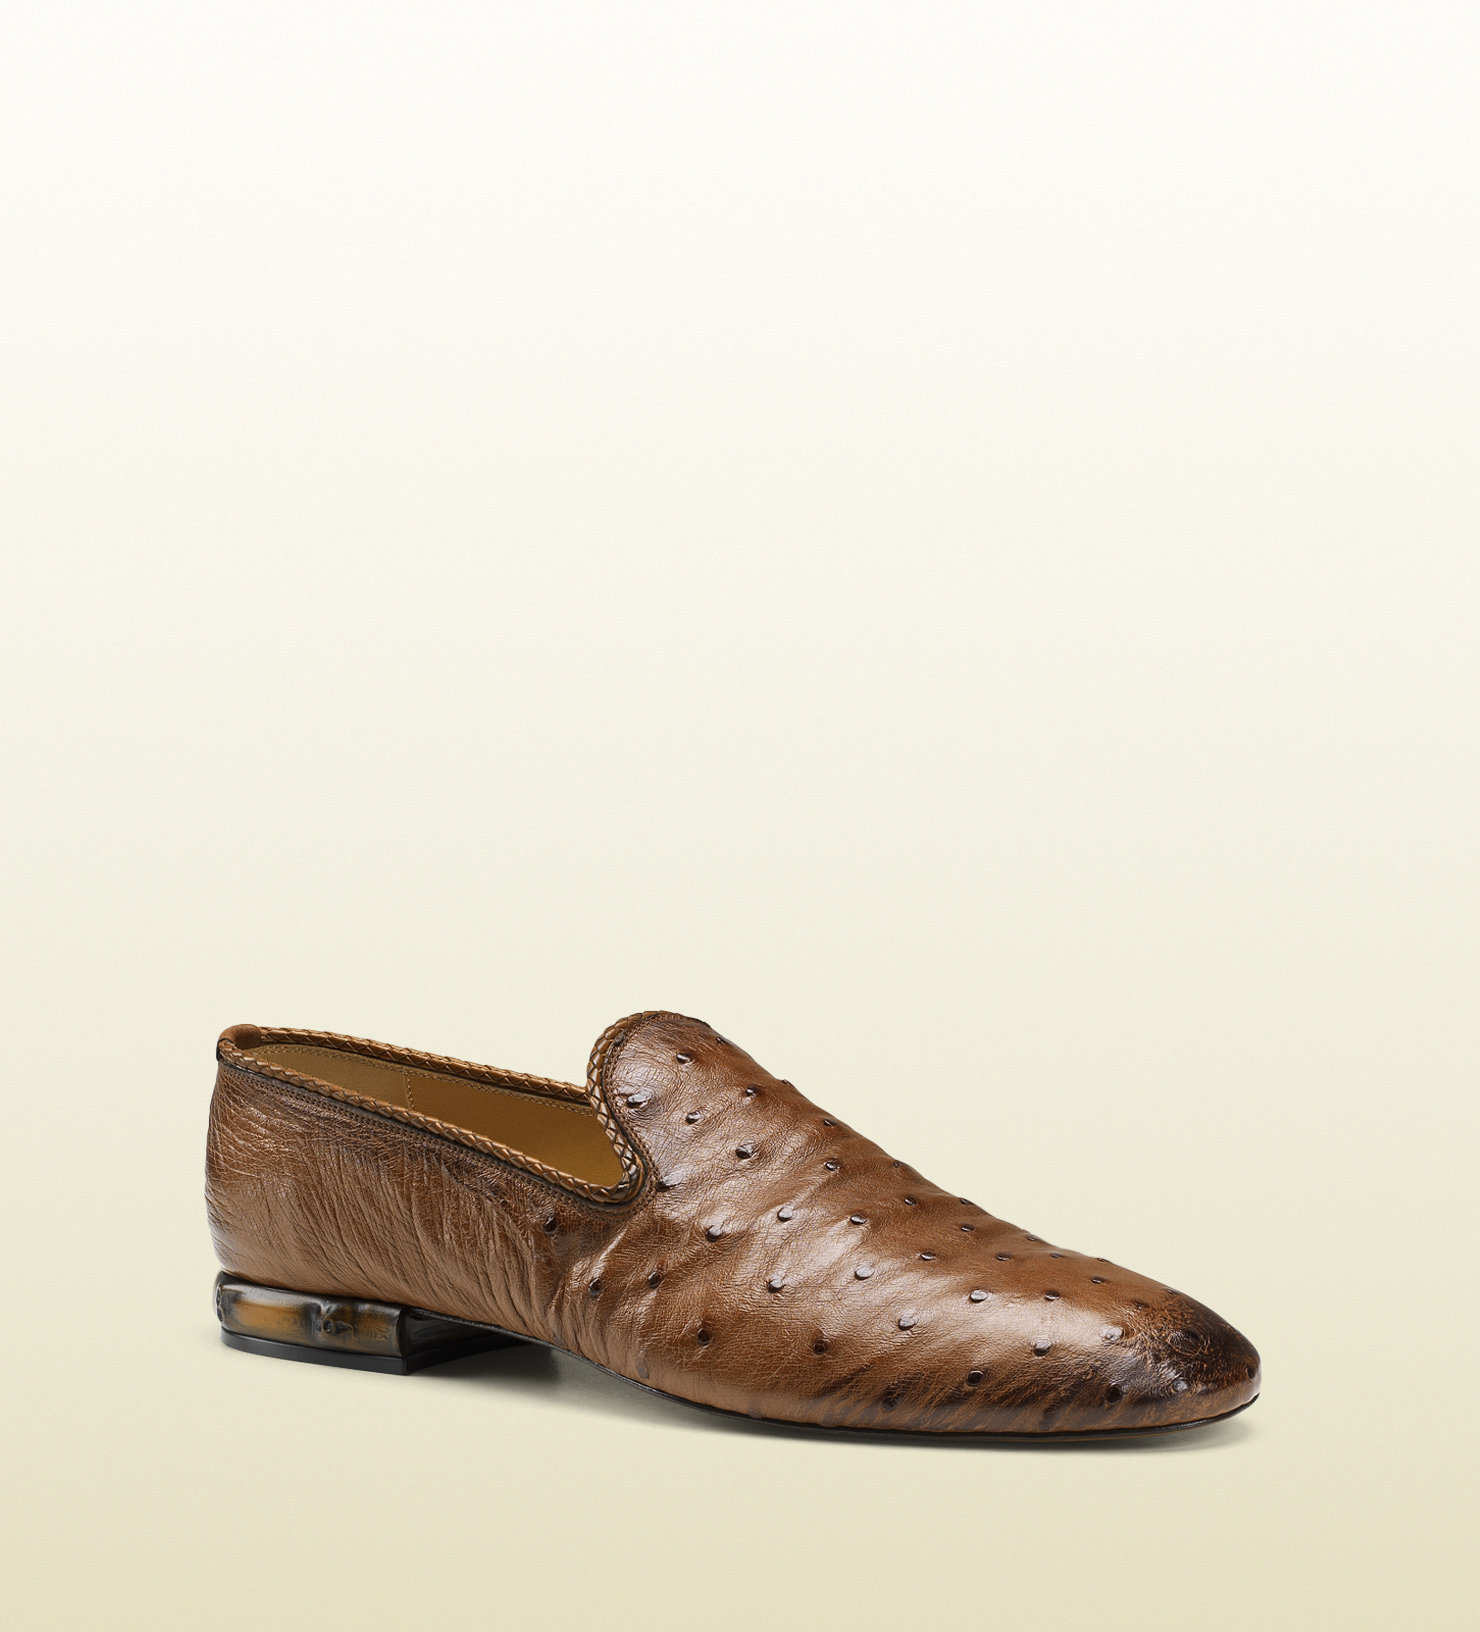 dfa2f7343d8 Gucci Ostrich Loafer with Leather Piping in Brown for Men - Lyst